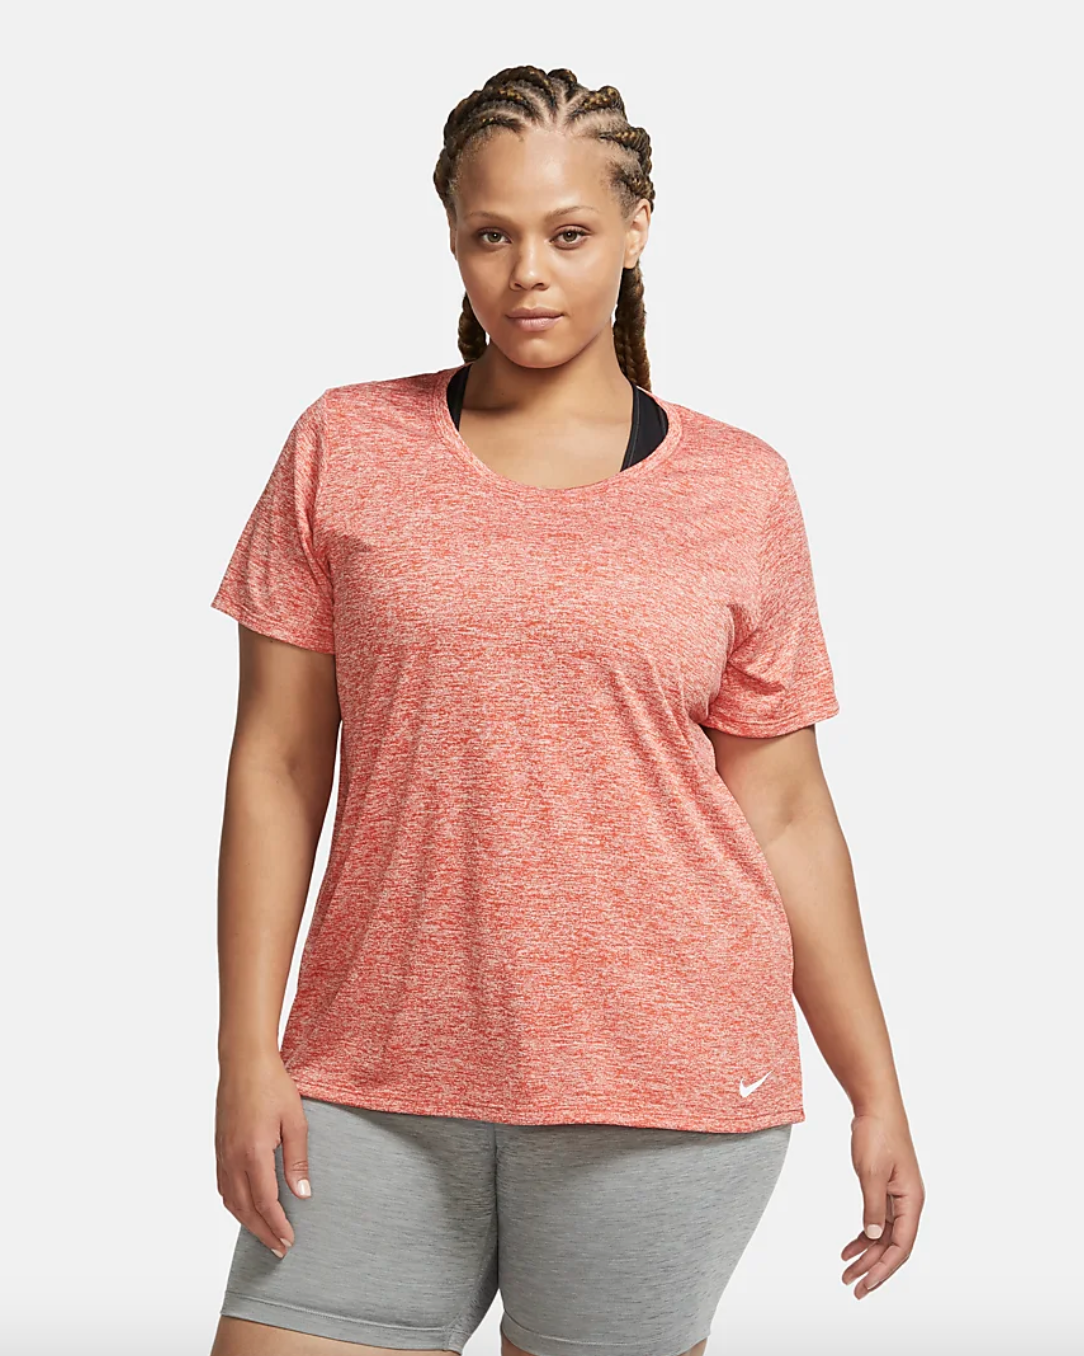 Model wearing the shirt in pink